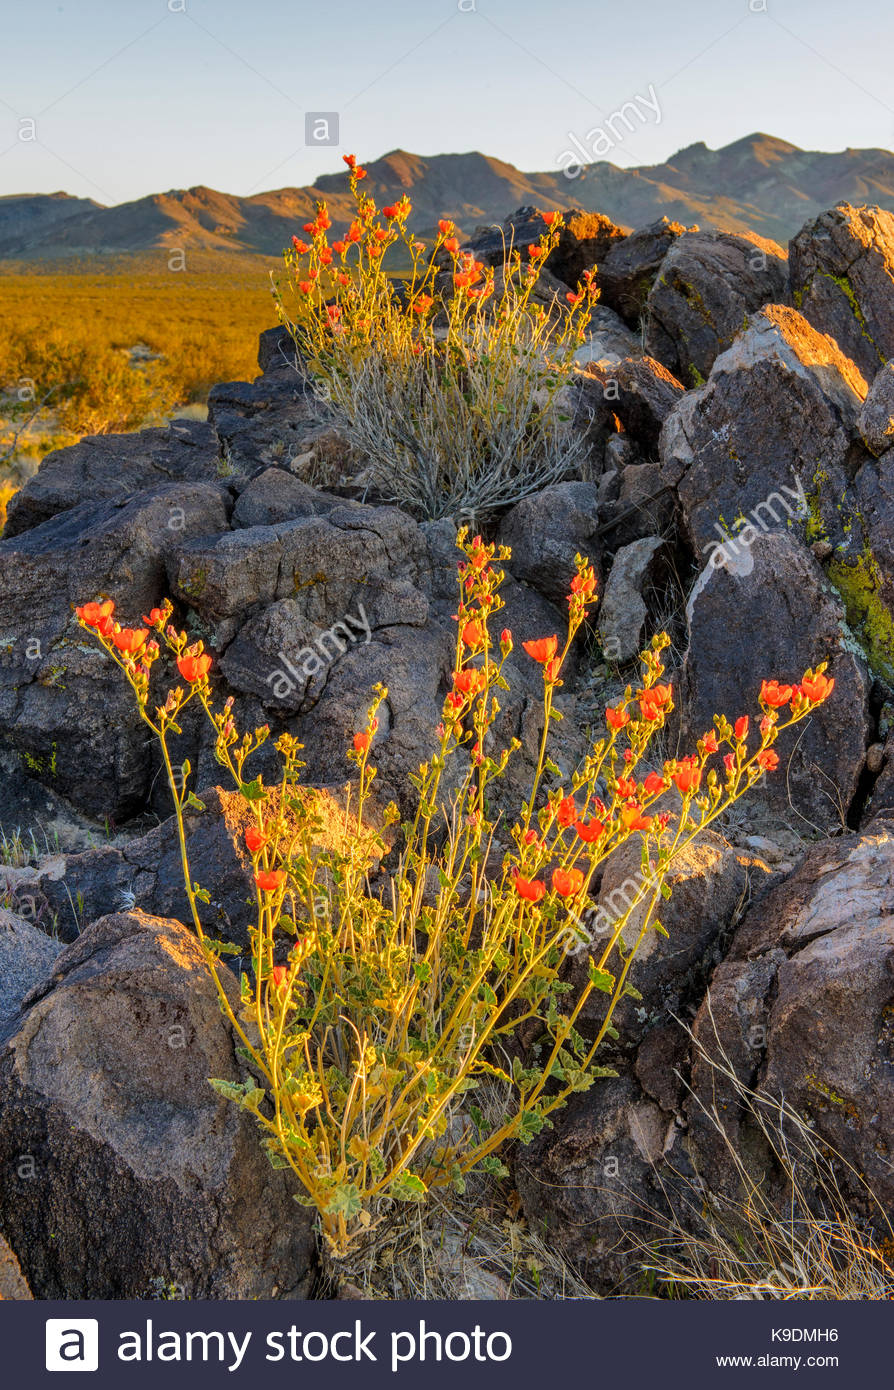 Coulter's Globemallow in the Greenwater Valley at Sunset, Death Valley National Park, California - Stock Image